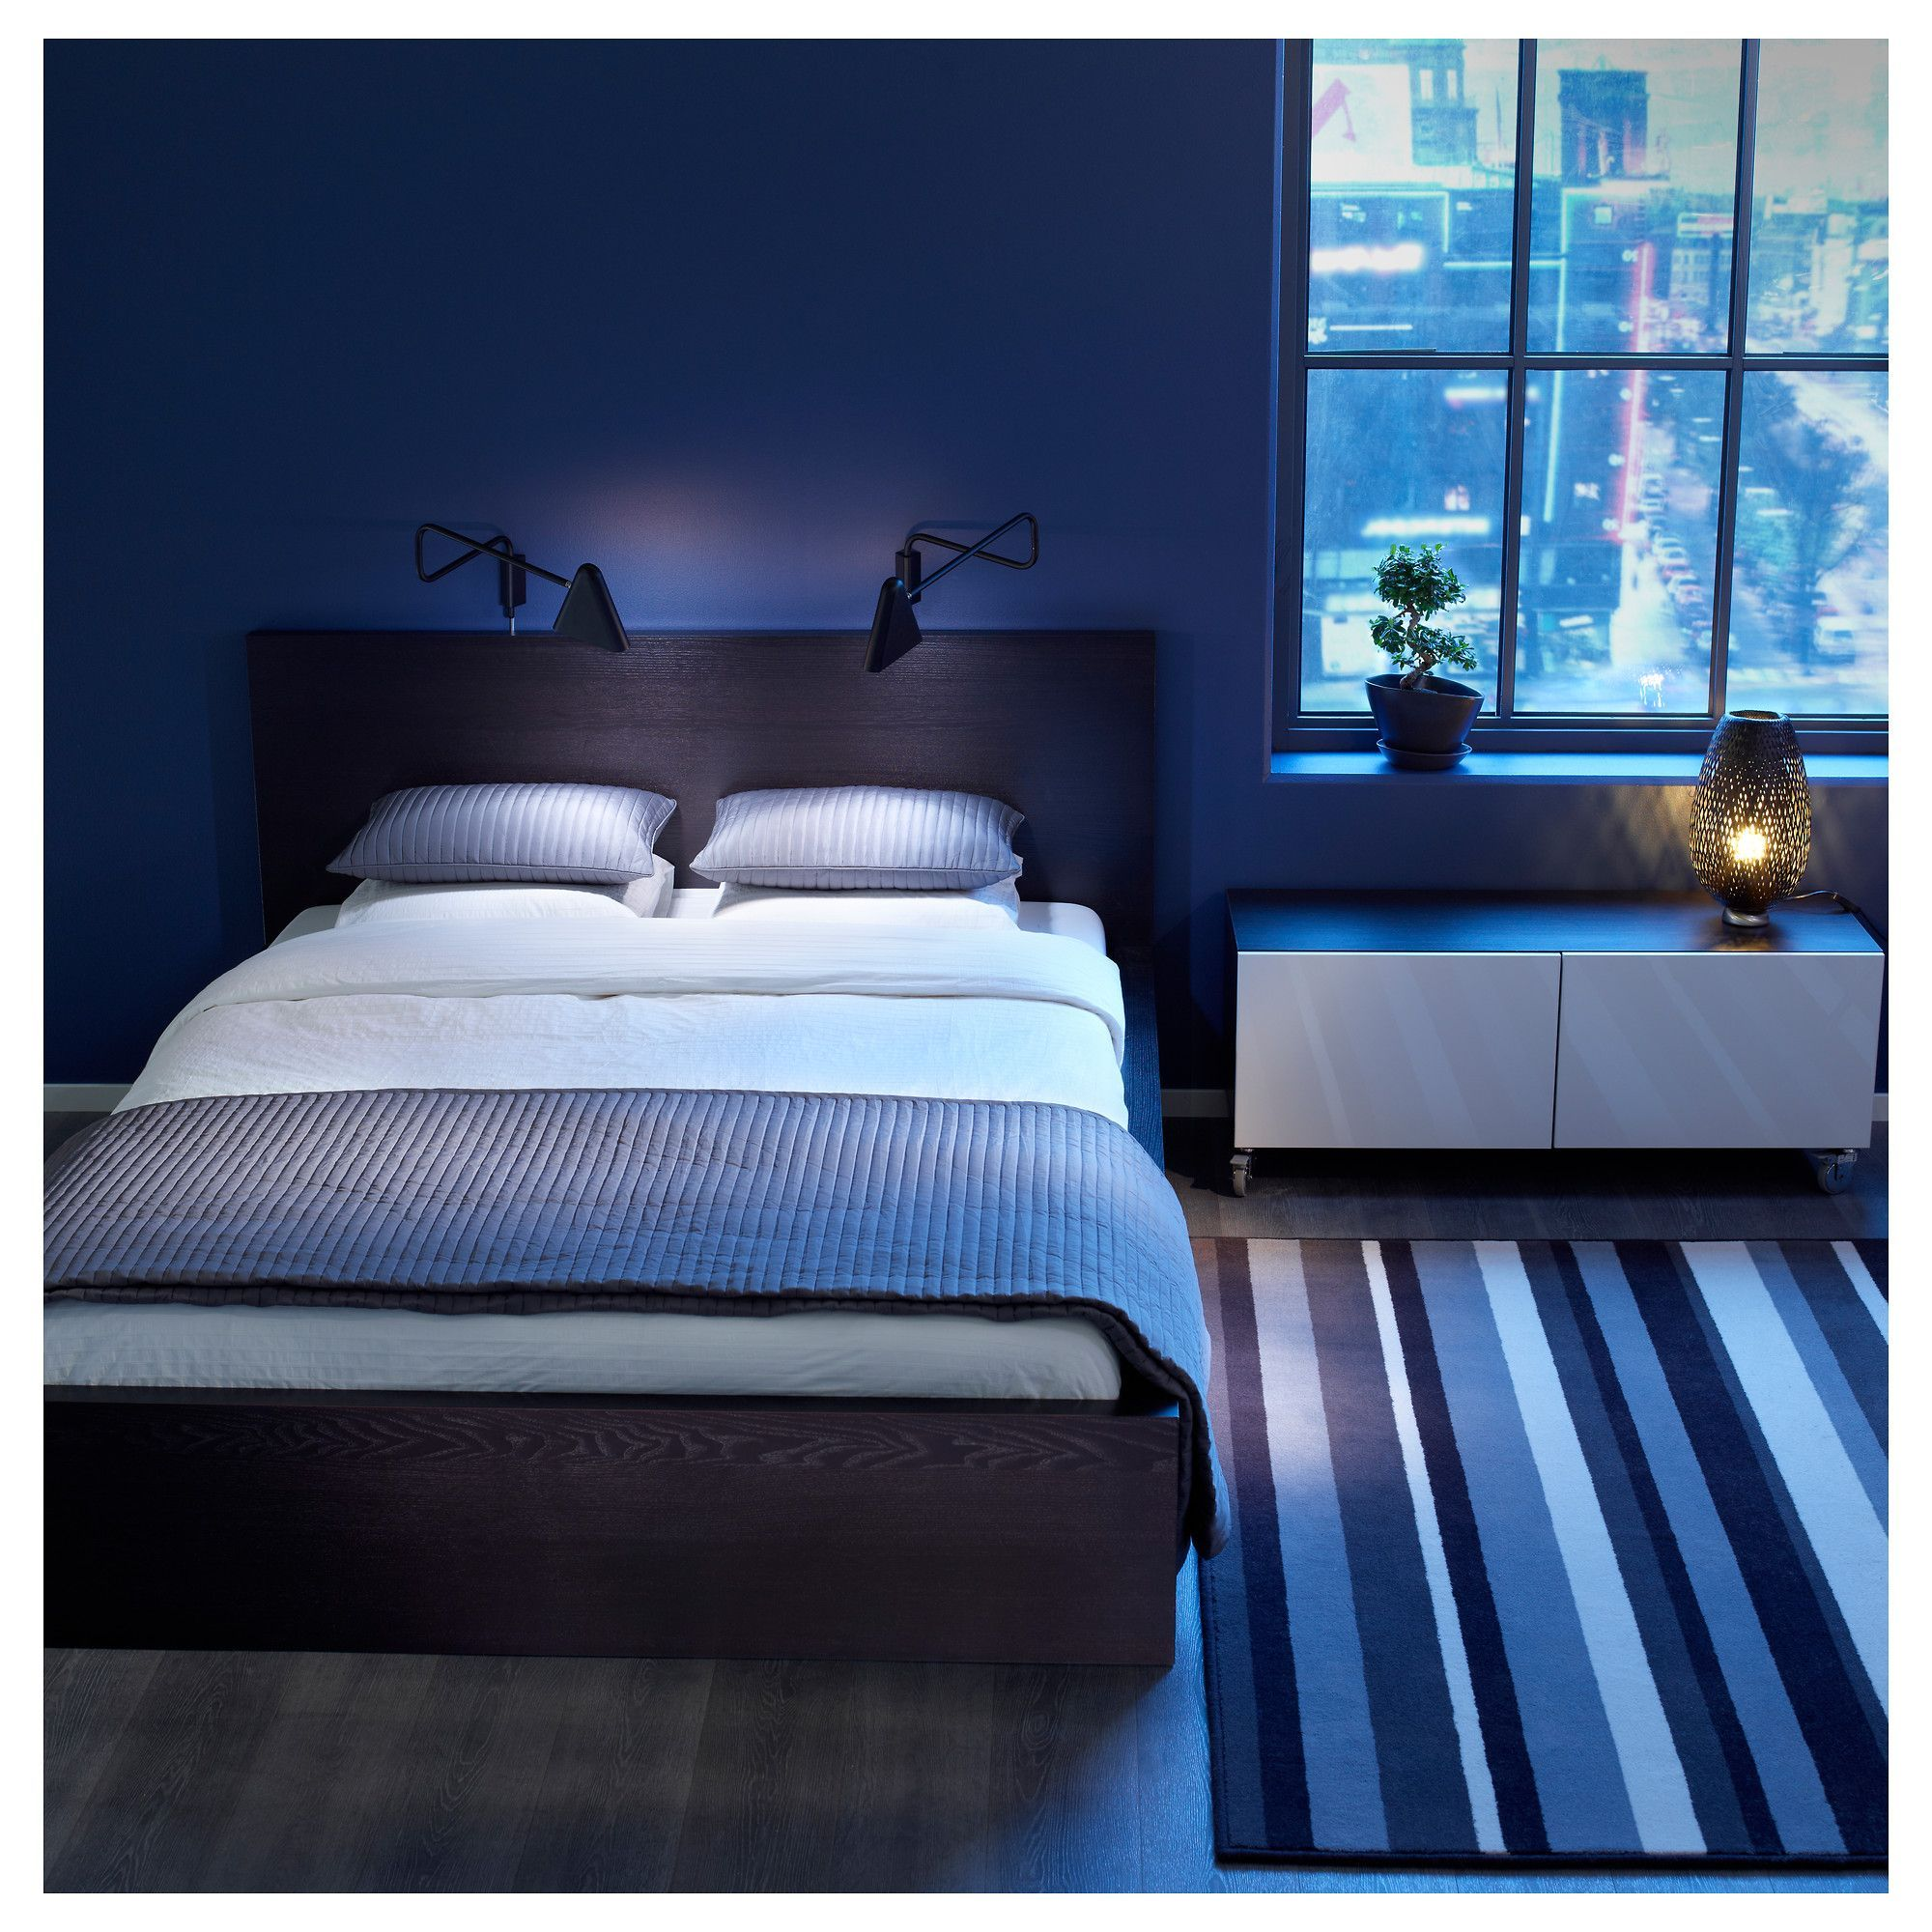 Brown and dark blue bedroom - Best Blue Themed Bedroom Decorations With Dark Wooden Platform Bed Plus White Bedding Plus Brown Wooden Headbaord Plus White Cushions And Striped Carpet